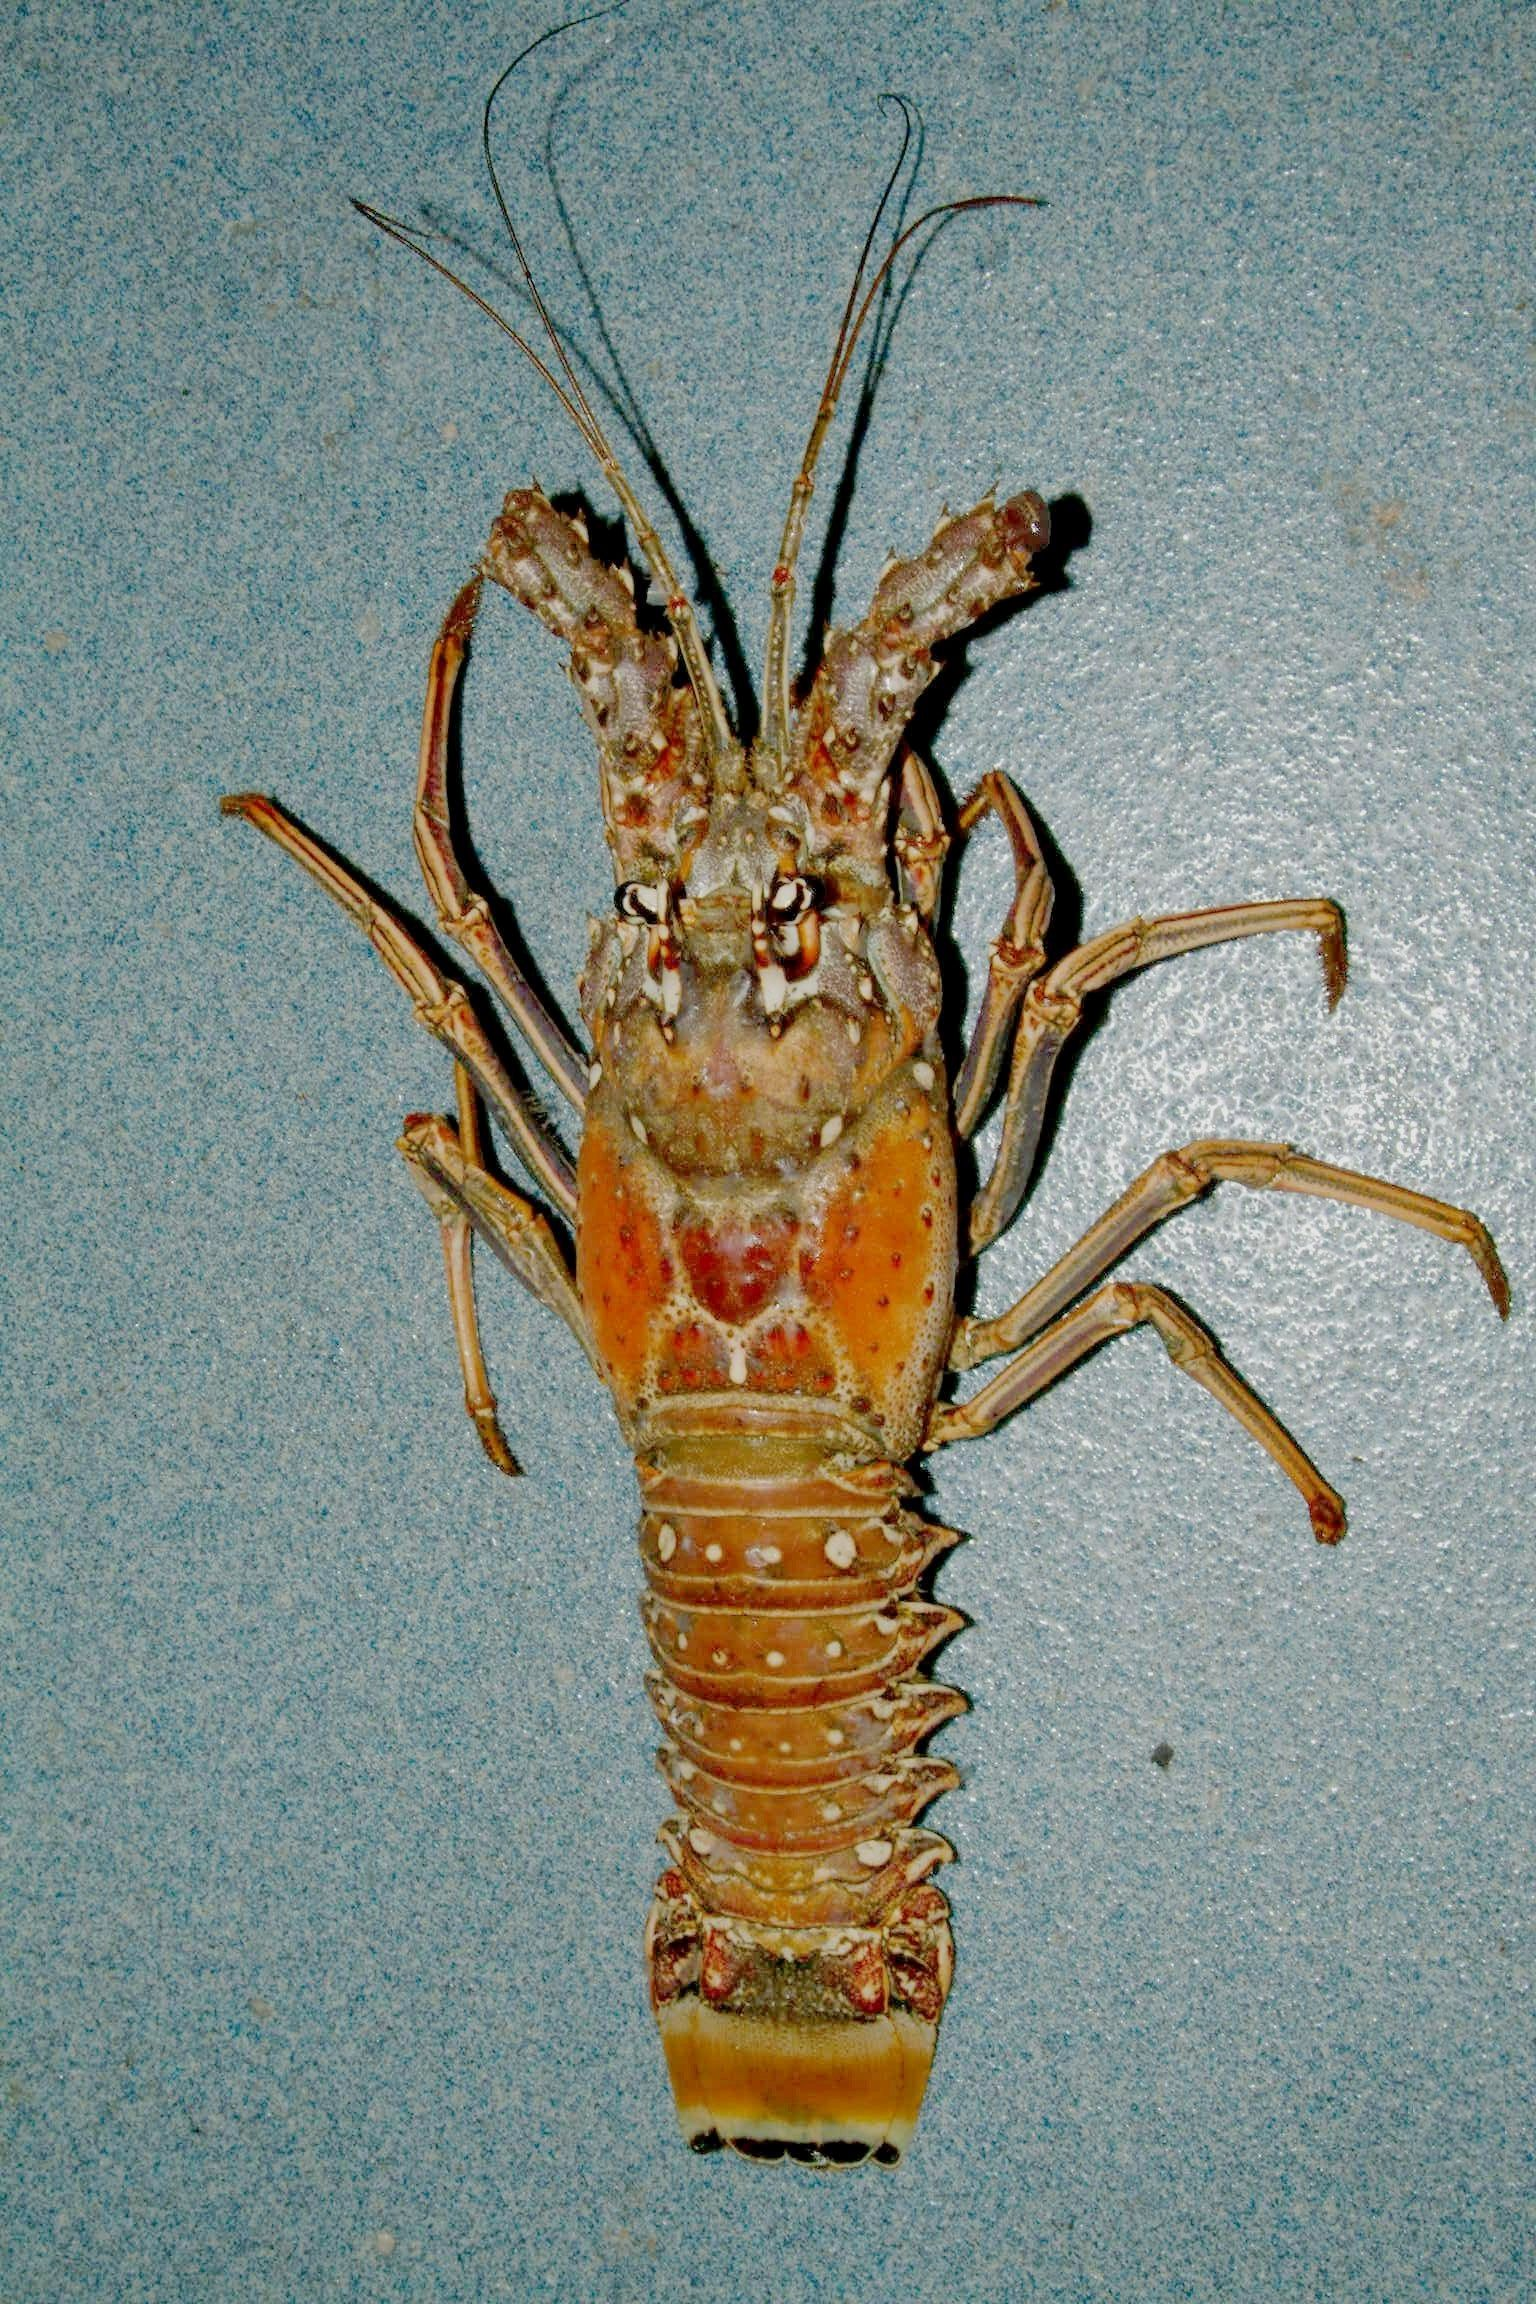 This is a lobster